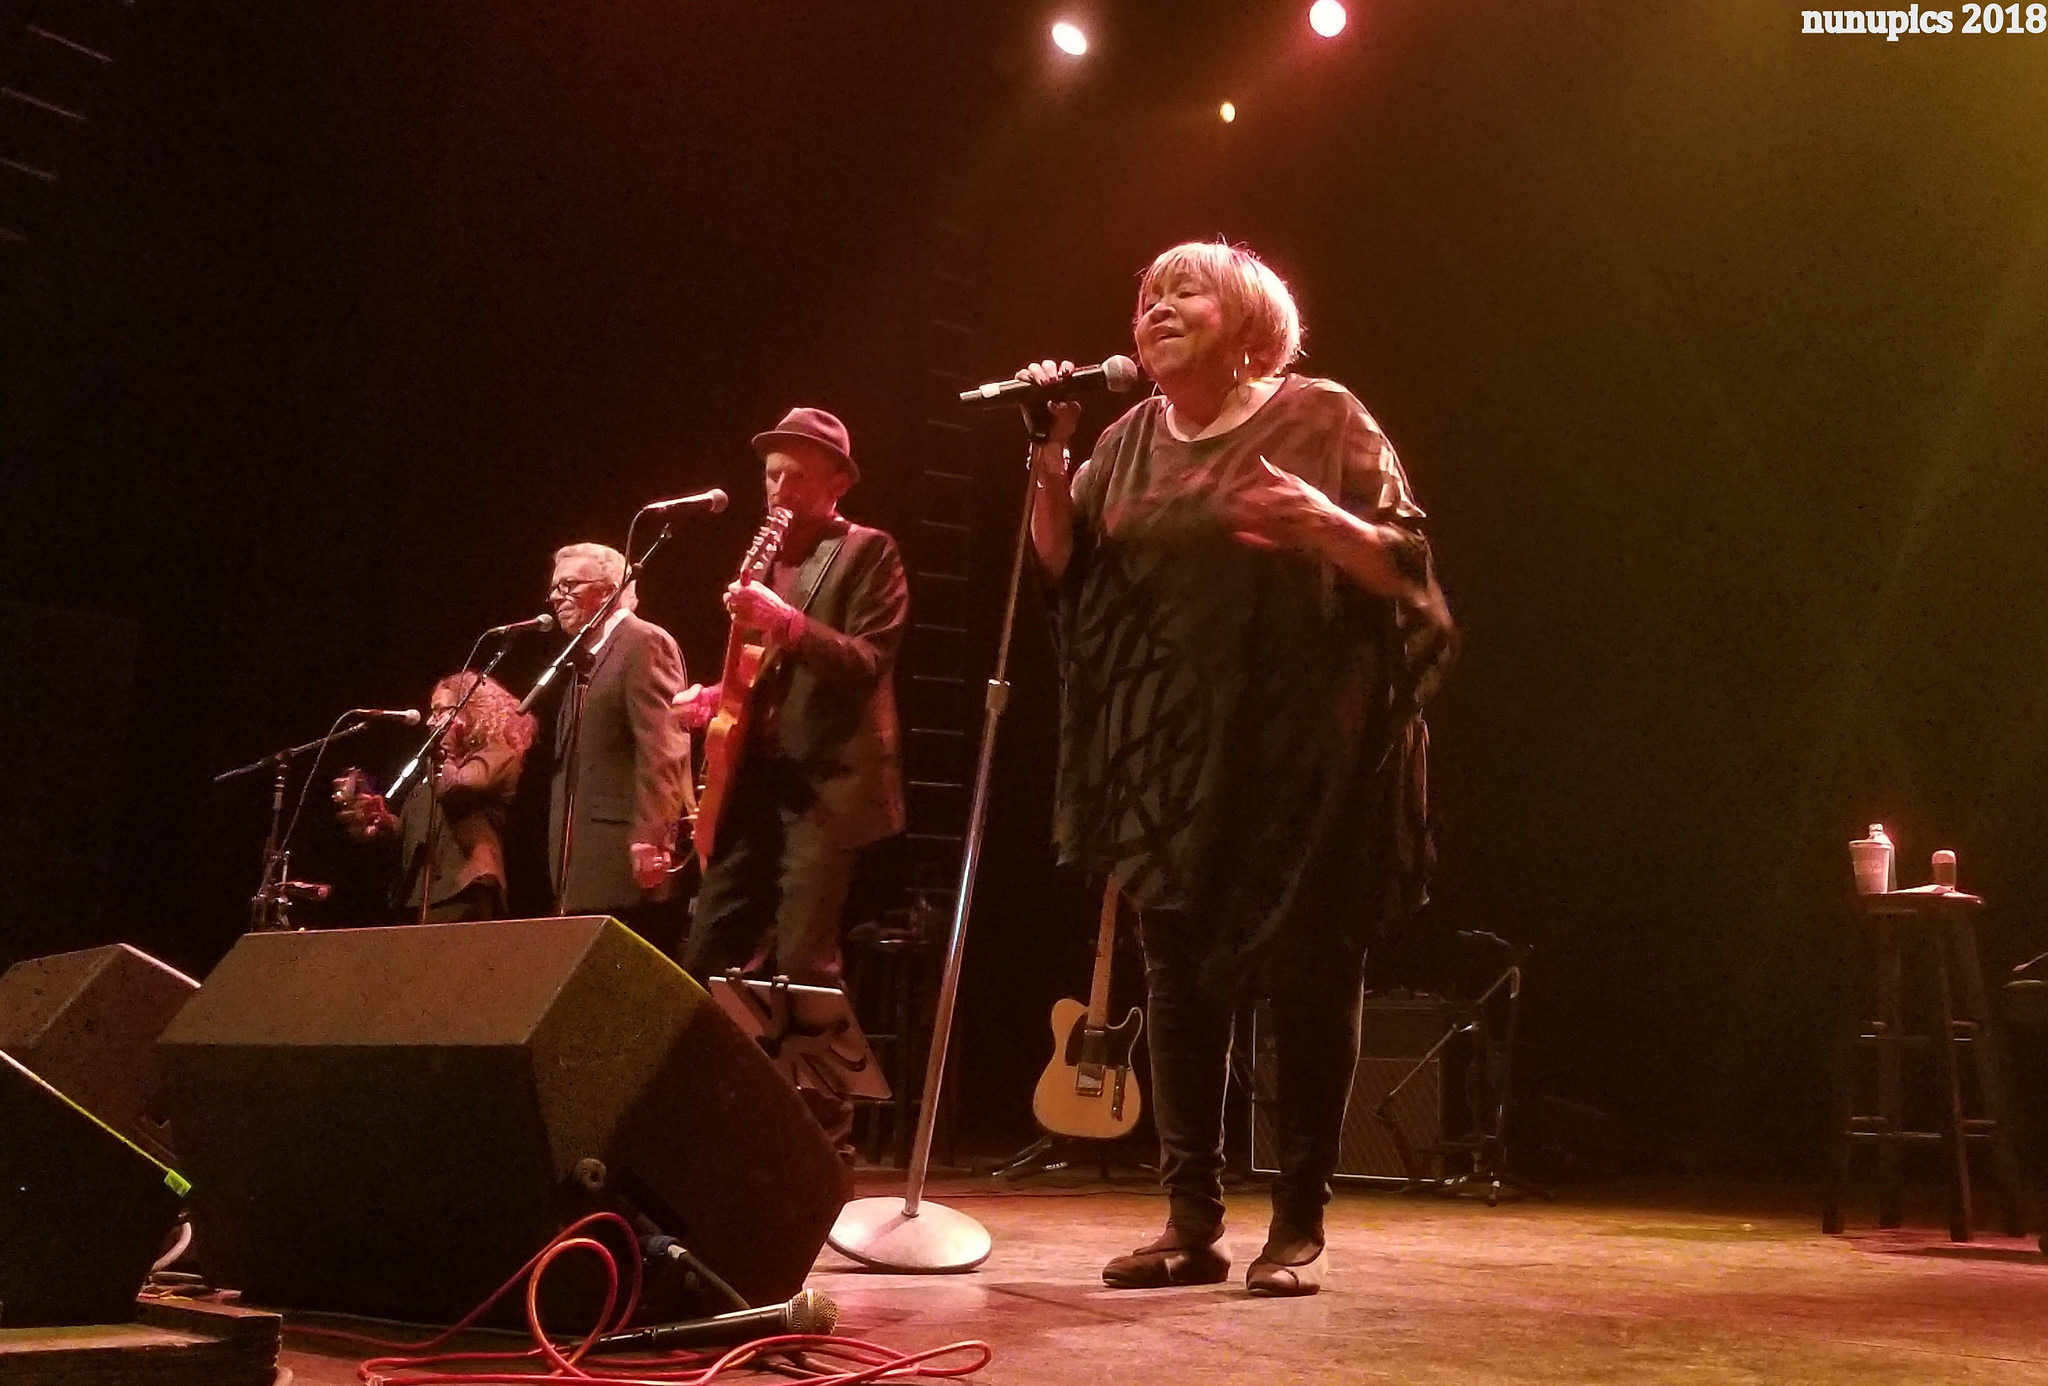 Photos / Video / Setlist | Mavis Staples Brings Star Power To The Vic